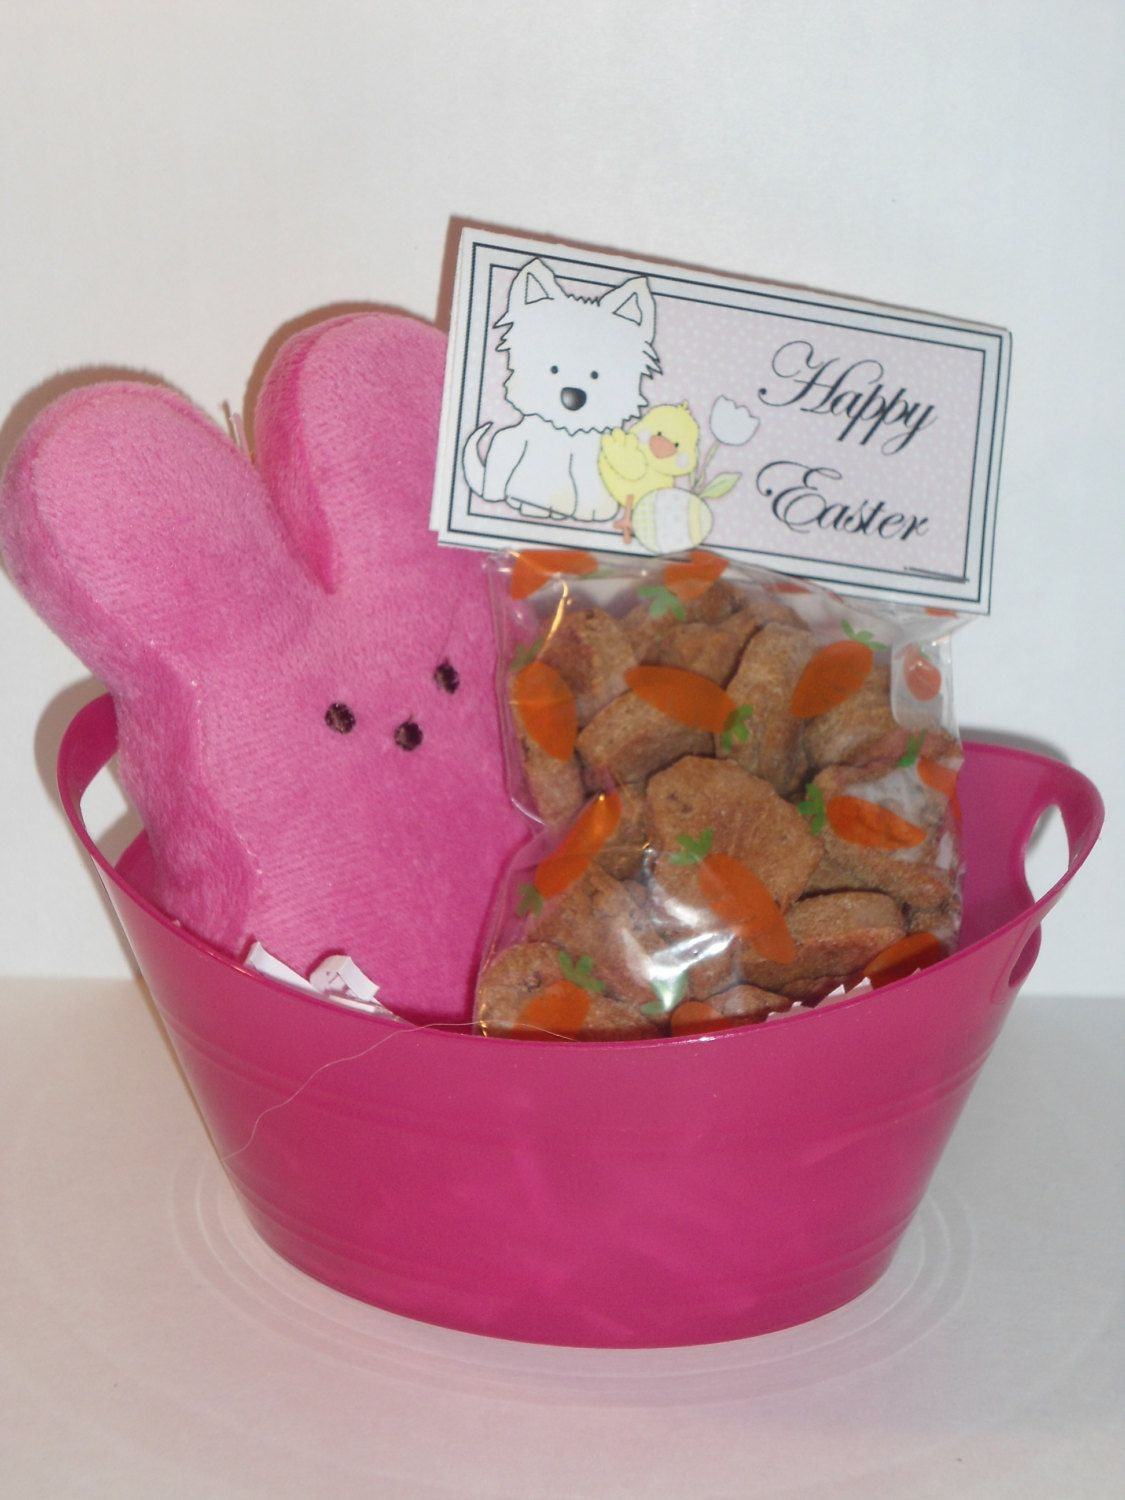 Peeps easter basket for dogs homemade all natural dog treats by peeps easter basket for dogs homemade all natural dog treats by pamperedpupsbakery on etsy negle Images